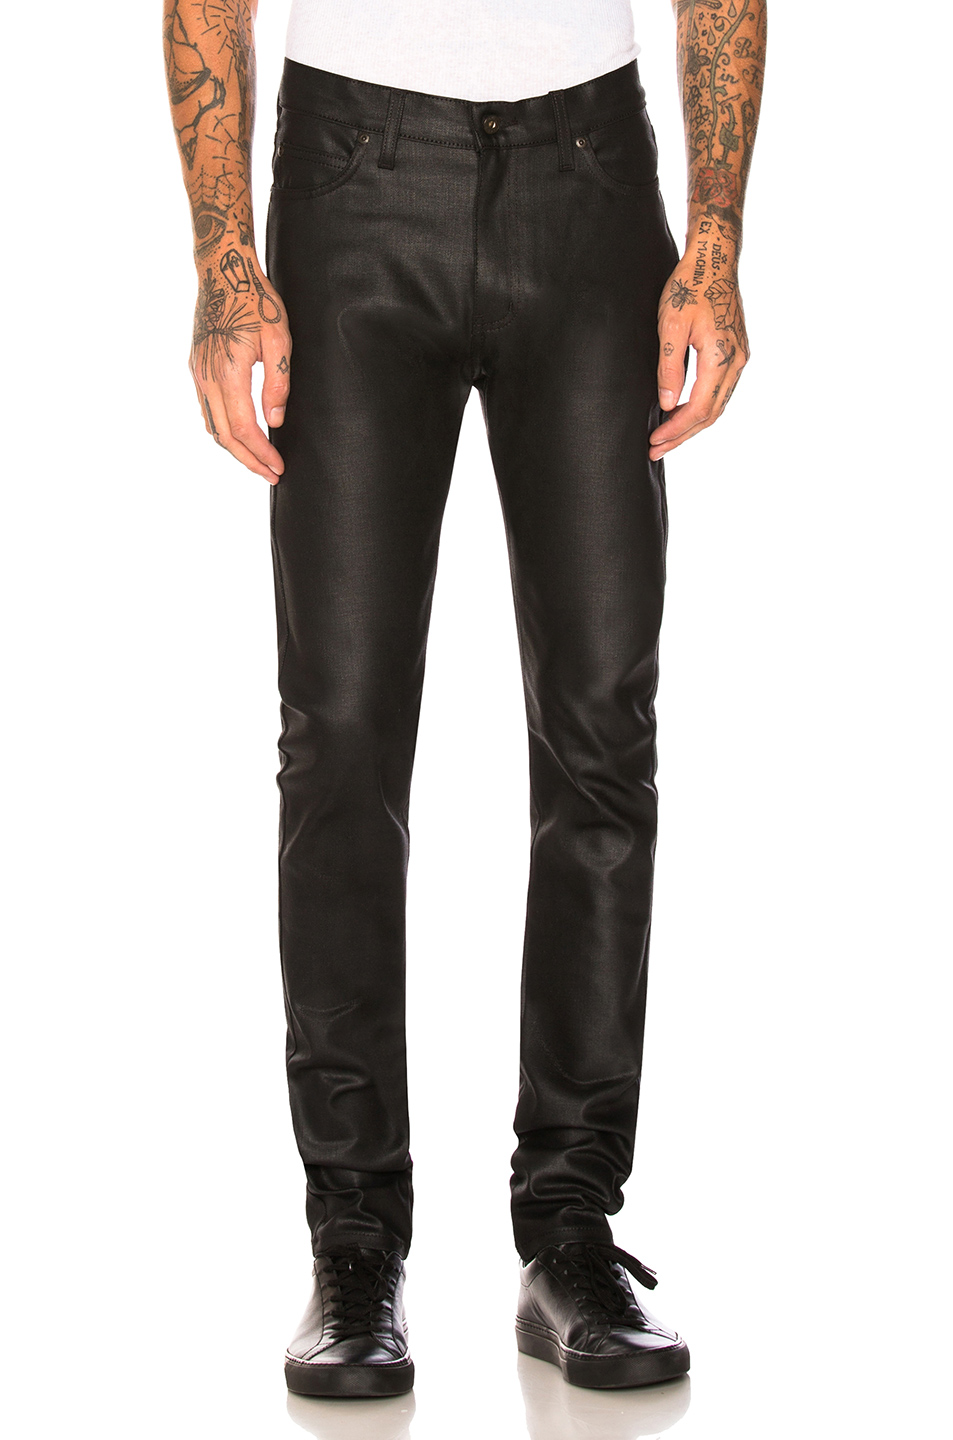 Naked /& Famous Denim Mens Super Guy Black Waxed Stretch Jeans